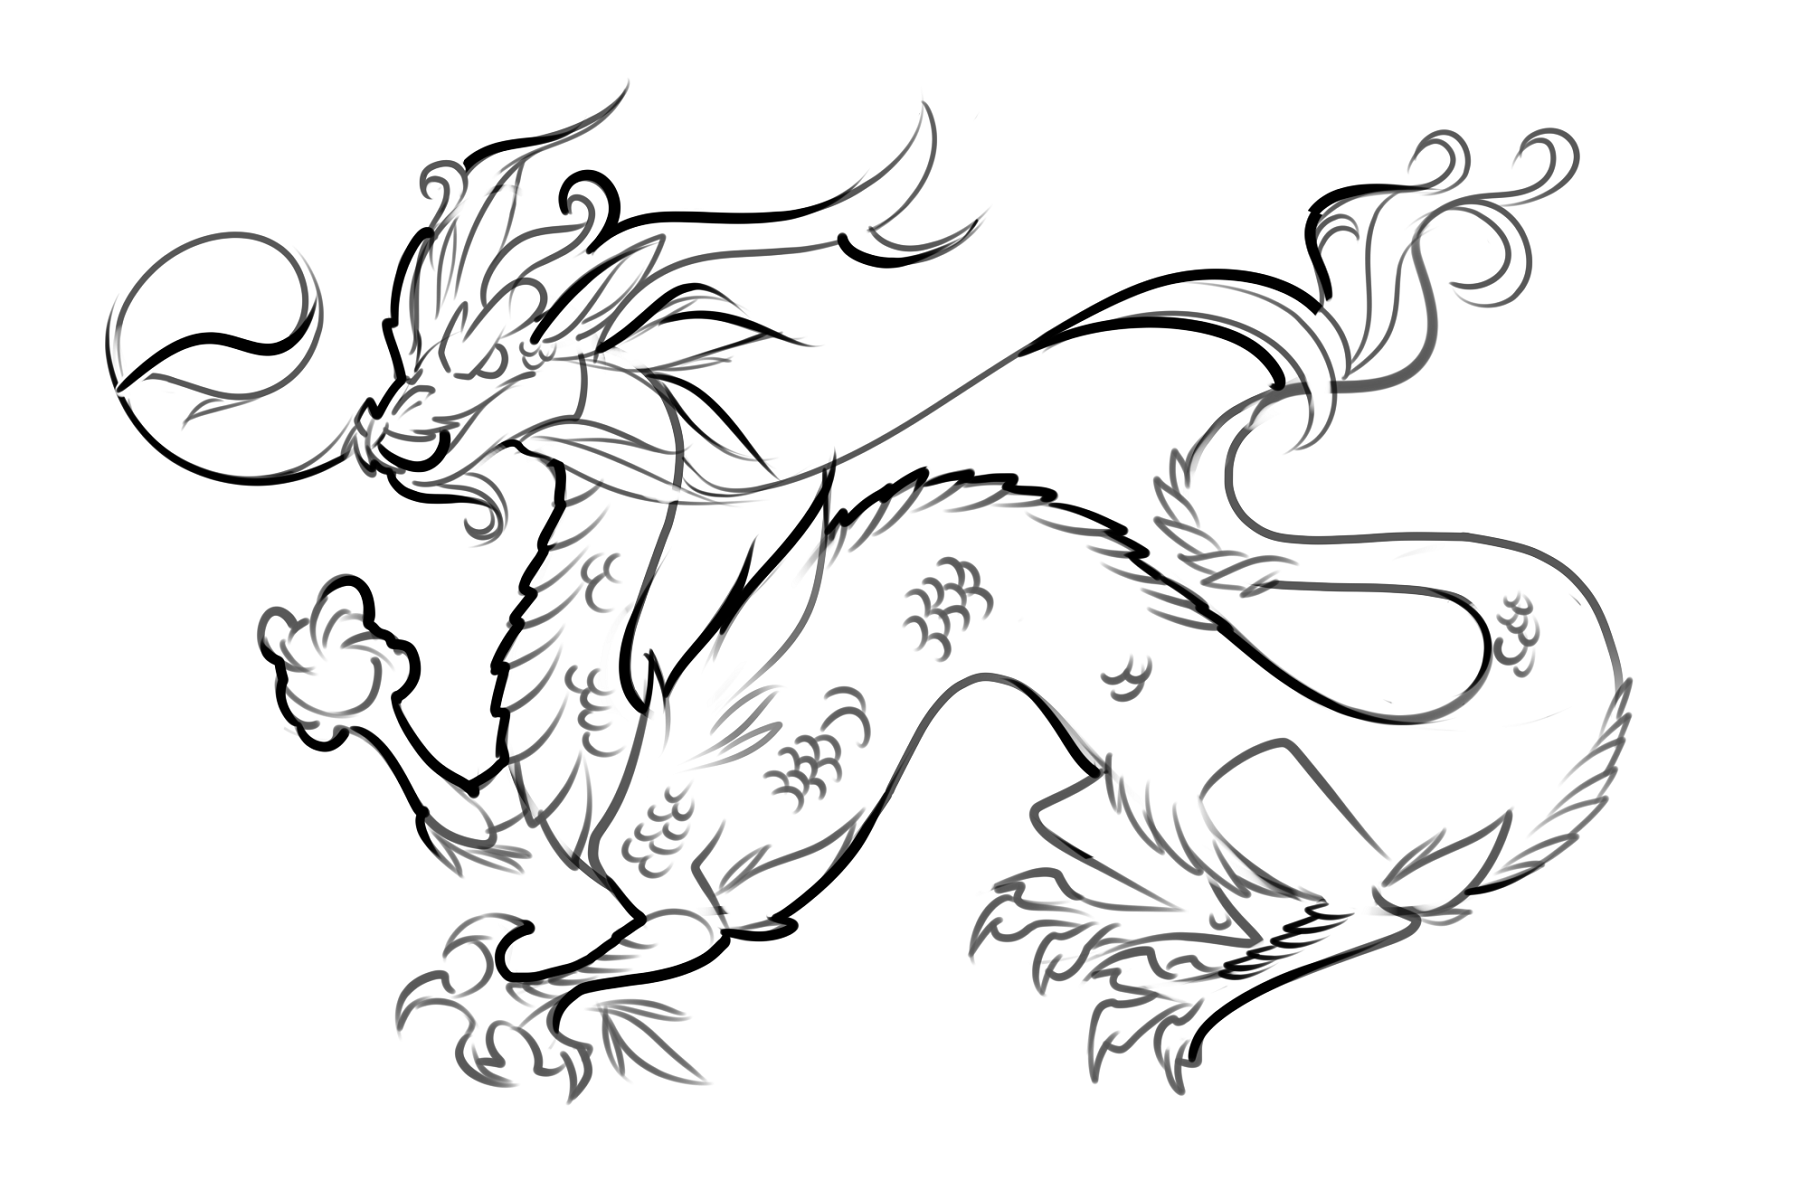 dragon drawing easy dragon coloring pages printable activity shelter easy dragon drawing